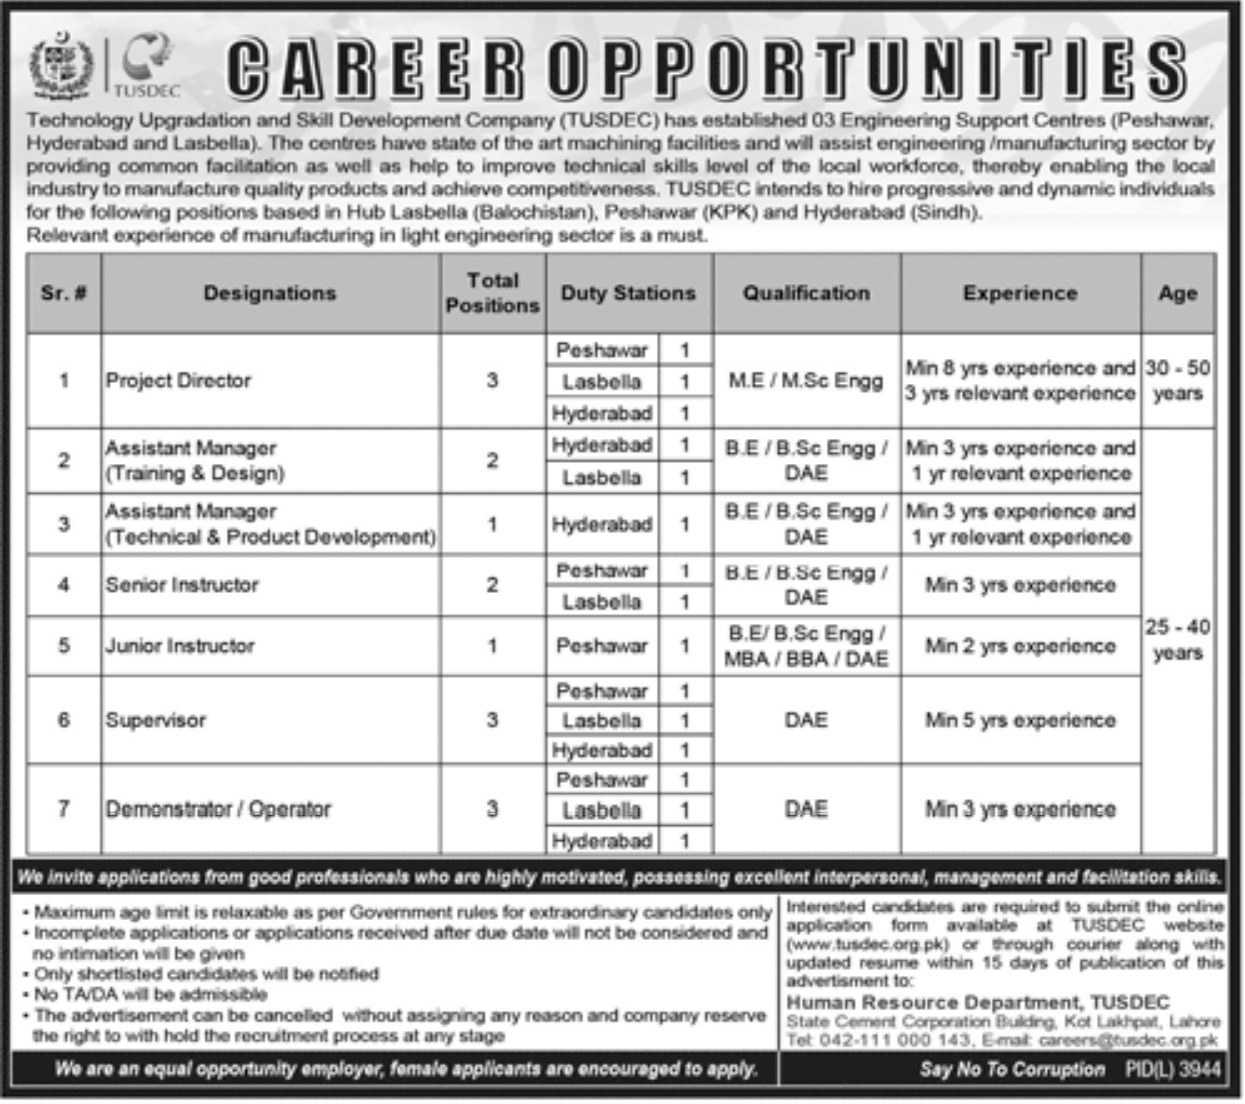 Technology Upgradation and Skill Development Company TUSDEC Jobs 2019